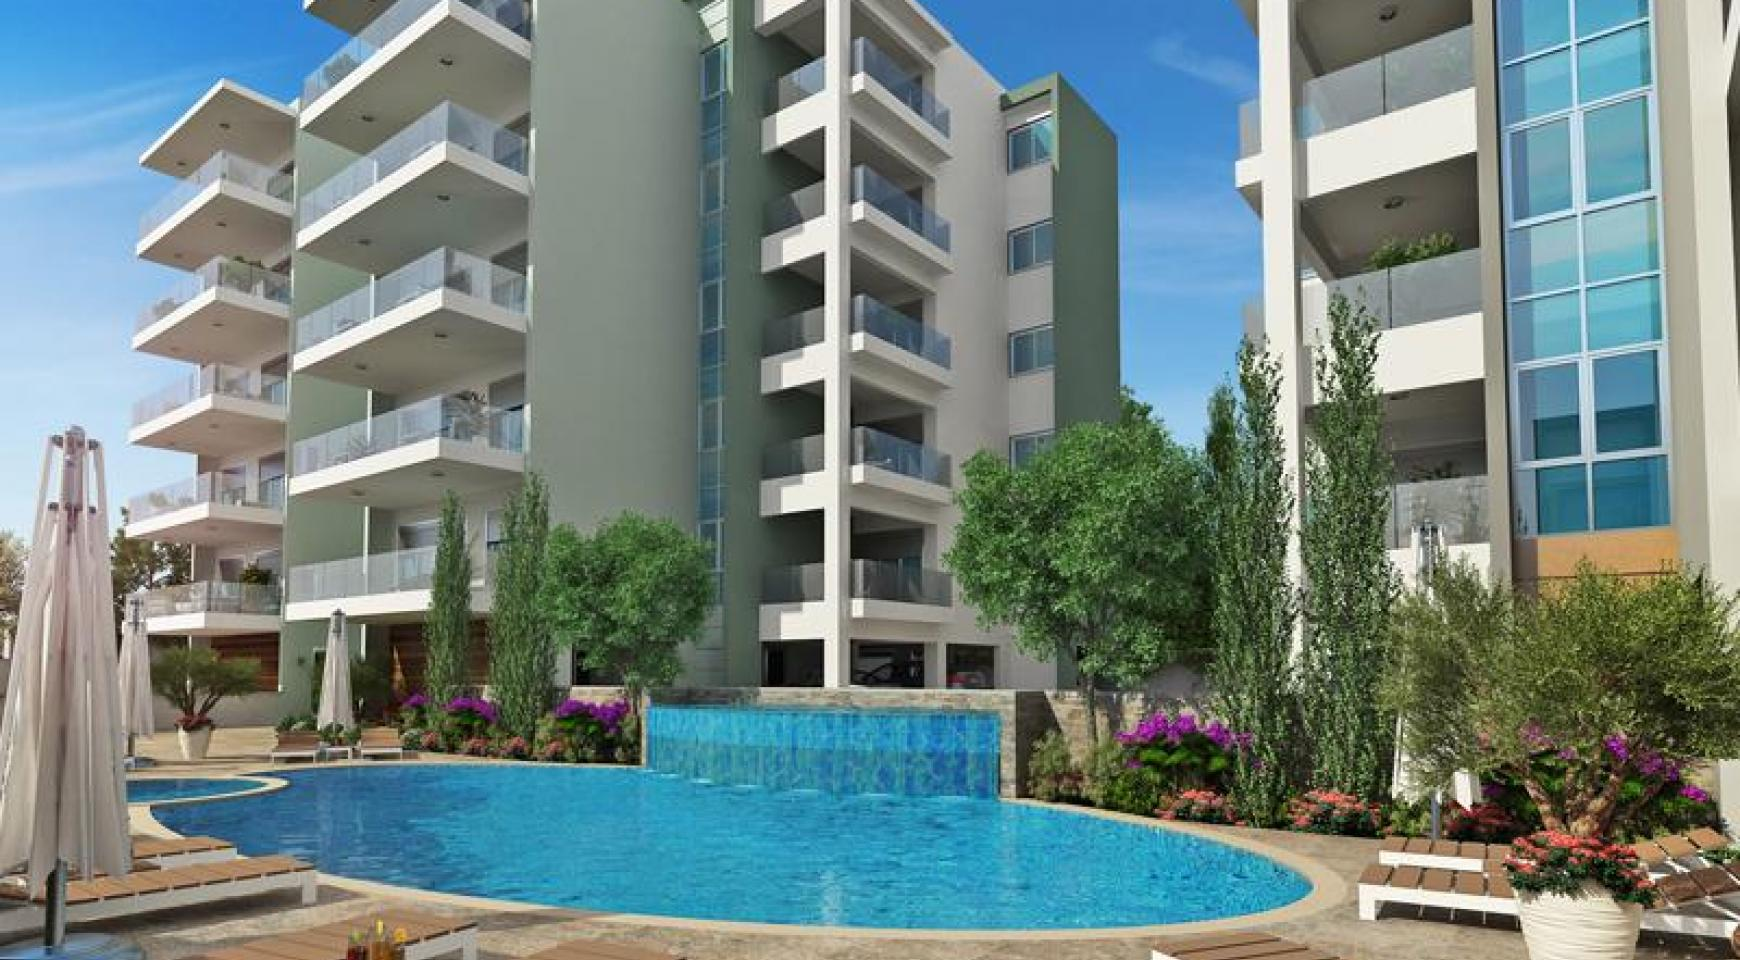 Contemporary Spacious 4 Bedroom Duplex - Apartment - 3